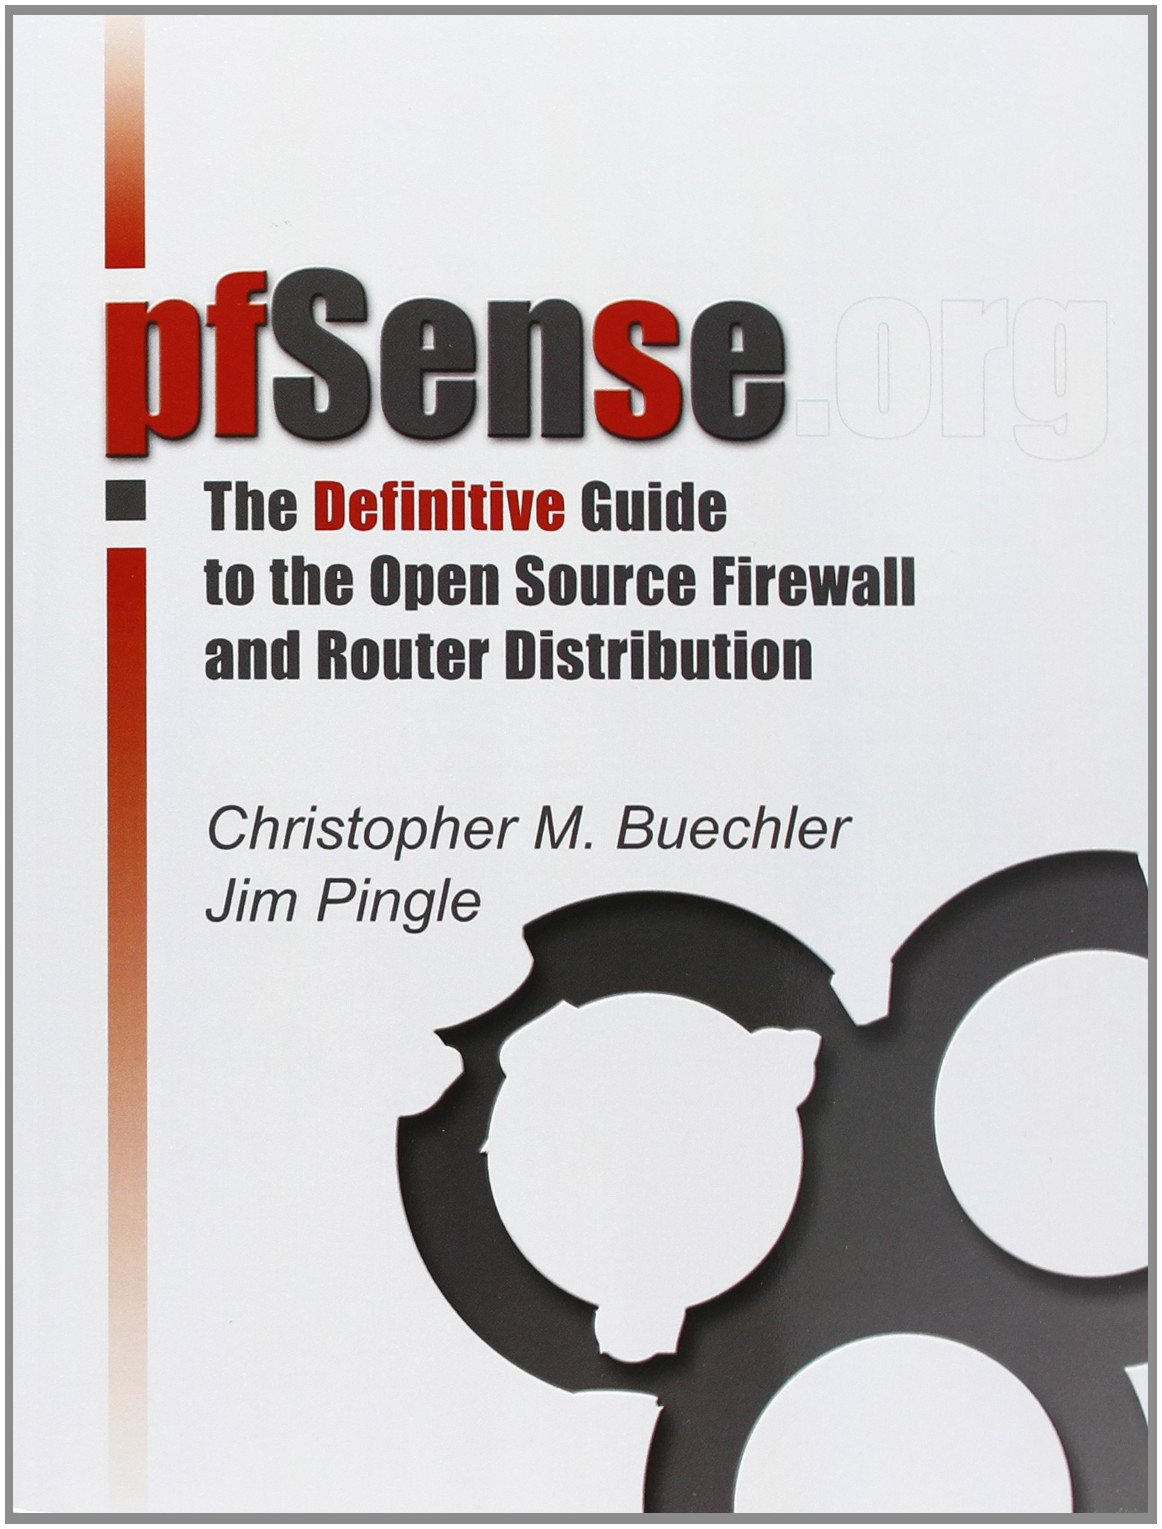 Pfsense the definitive guide amazon co uk christopher m buechler jim pingle michael w lucas 9780979034282 books